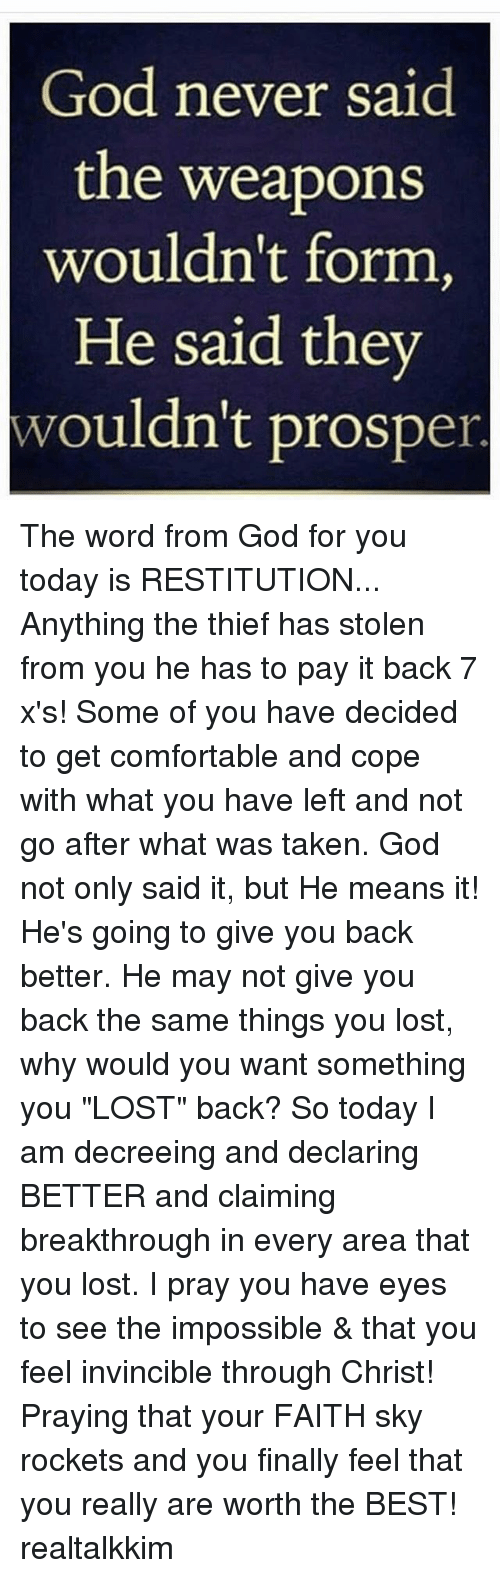 """Comfortable, God, and Memes: God never said  the weapons  wouldn't form,  He said they  wouldn't prosper The word from God for you today is RESTITUTION... Anything the thief has stolen from you he has to pay it back 7 x's! Some of you have decided to get comfortable and cope with what you have left and not go after what was taken. God not only said it, but He means it! He's going to give you back better. He may not give you back the same things you lost, why would you want something you """"LOST"""" back? So today I am decreeing and declaring BETTER and claiming breakthrough in every area that you lost. I pray you have eyes to see the impossible & that you feel invincible through Christ! Praying that your FAITH sky rockets and you finally feel that you really are worth the BEST! realtalkkim"""